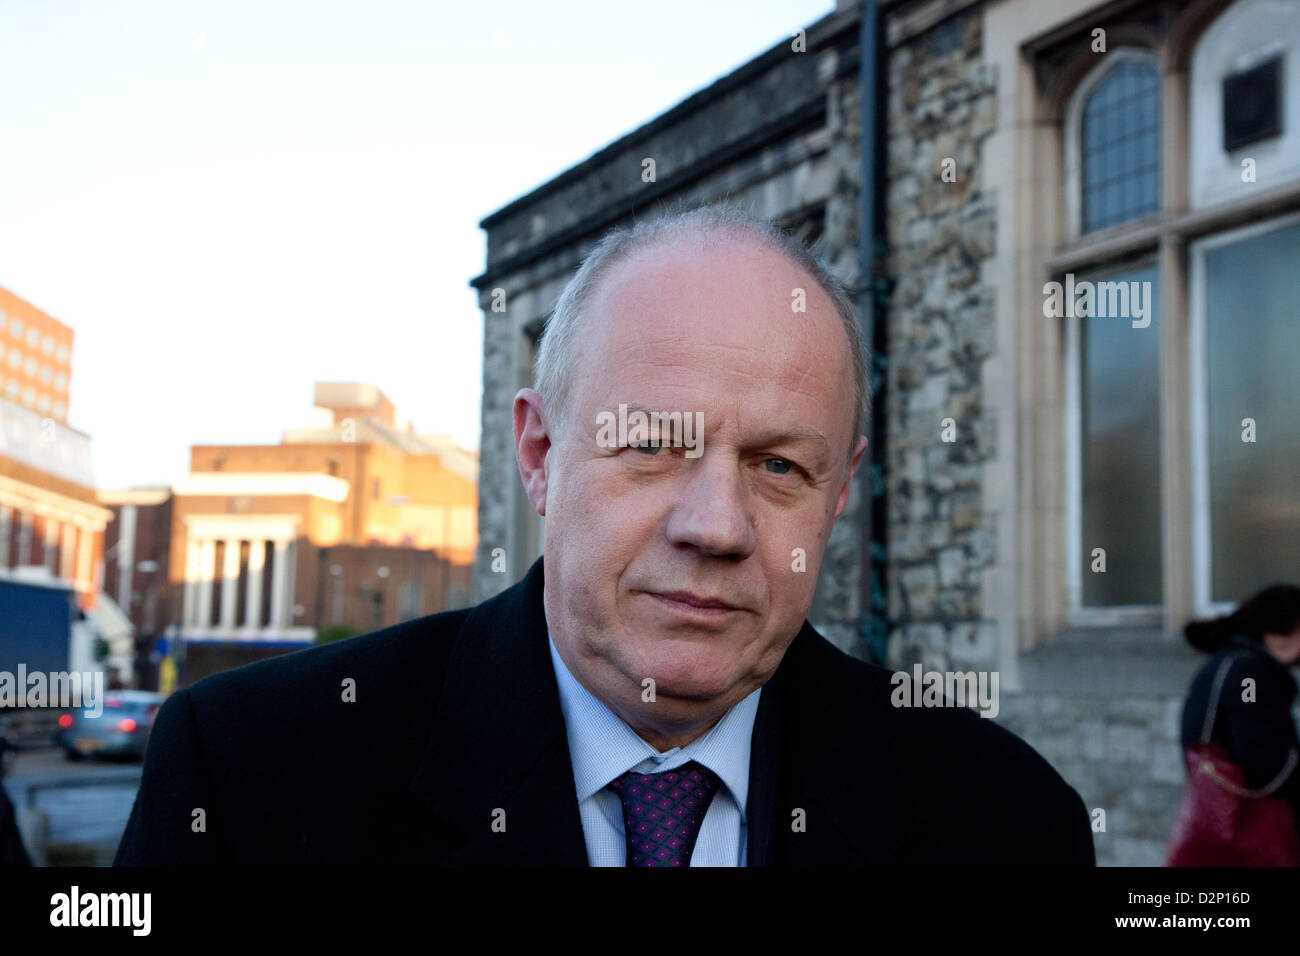 Damian Green MP, Minister of State for Policing and Criminal Justice. He is stepping out of Maidstone Magistates - Stock Image